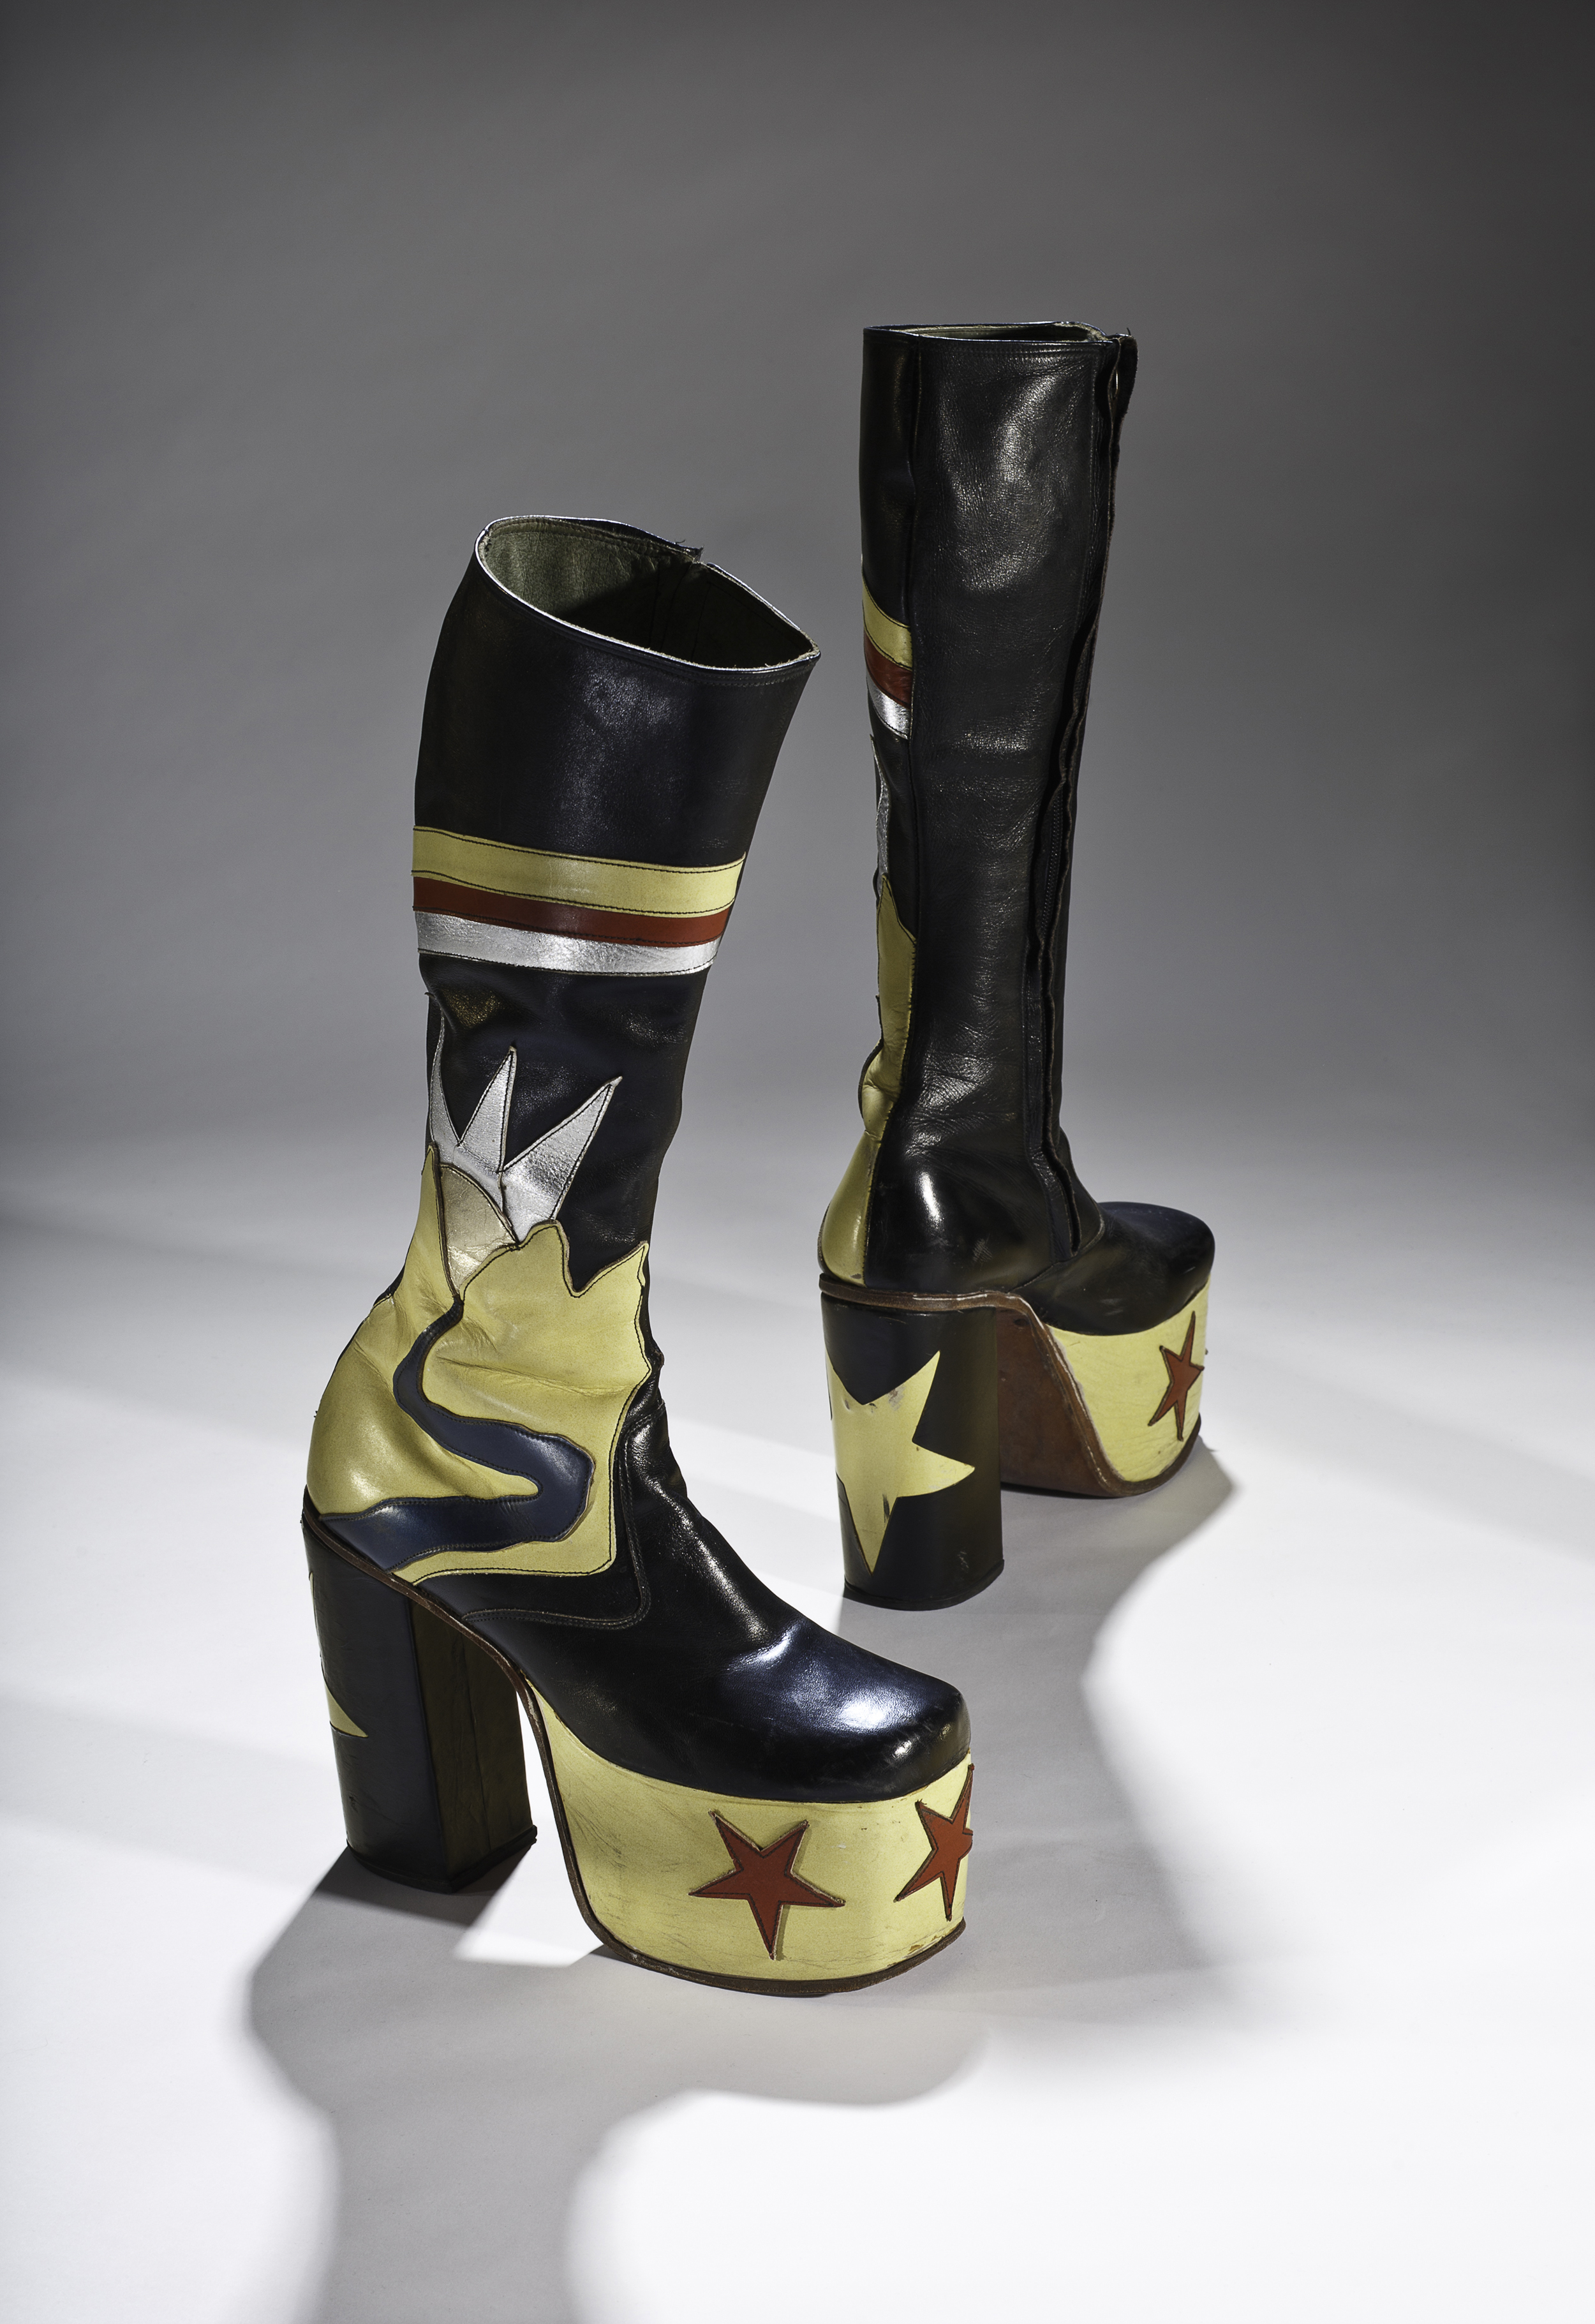 Toronto shoemaker Master John made these men's platform boots complete with 5 1/2-inch heels, appliquéd stars, and veritable landscape in leather. In the 1970s, some men followed the lead of rock stars in adopting lavish personal adornment and elevating shoes cultivating a persona at once dandyish and hyper-masculine. Collection of the Bata Shoe Museum. Photo credit: Image © 2015 Bata Shoe Museum, Toronto, Canada